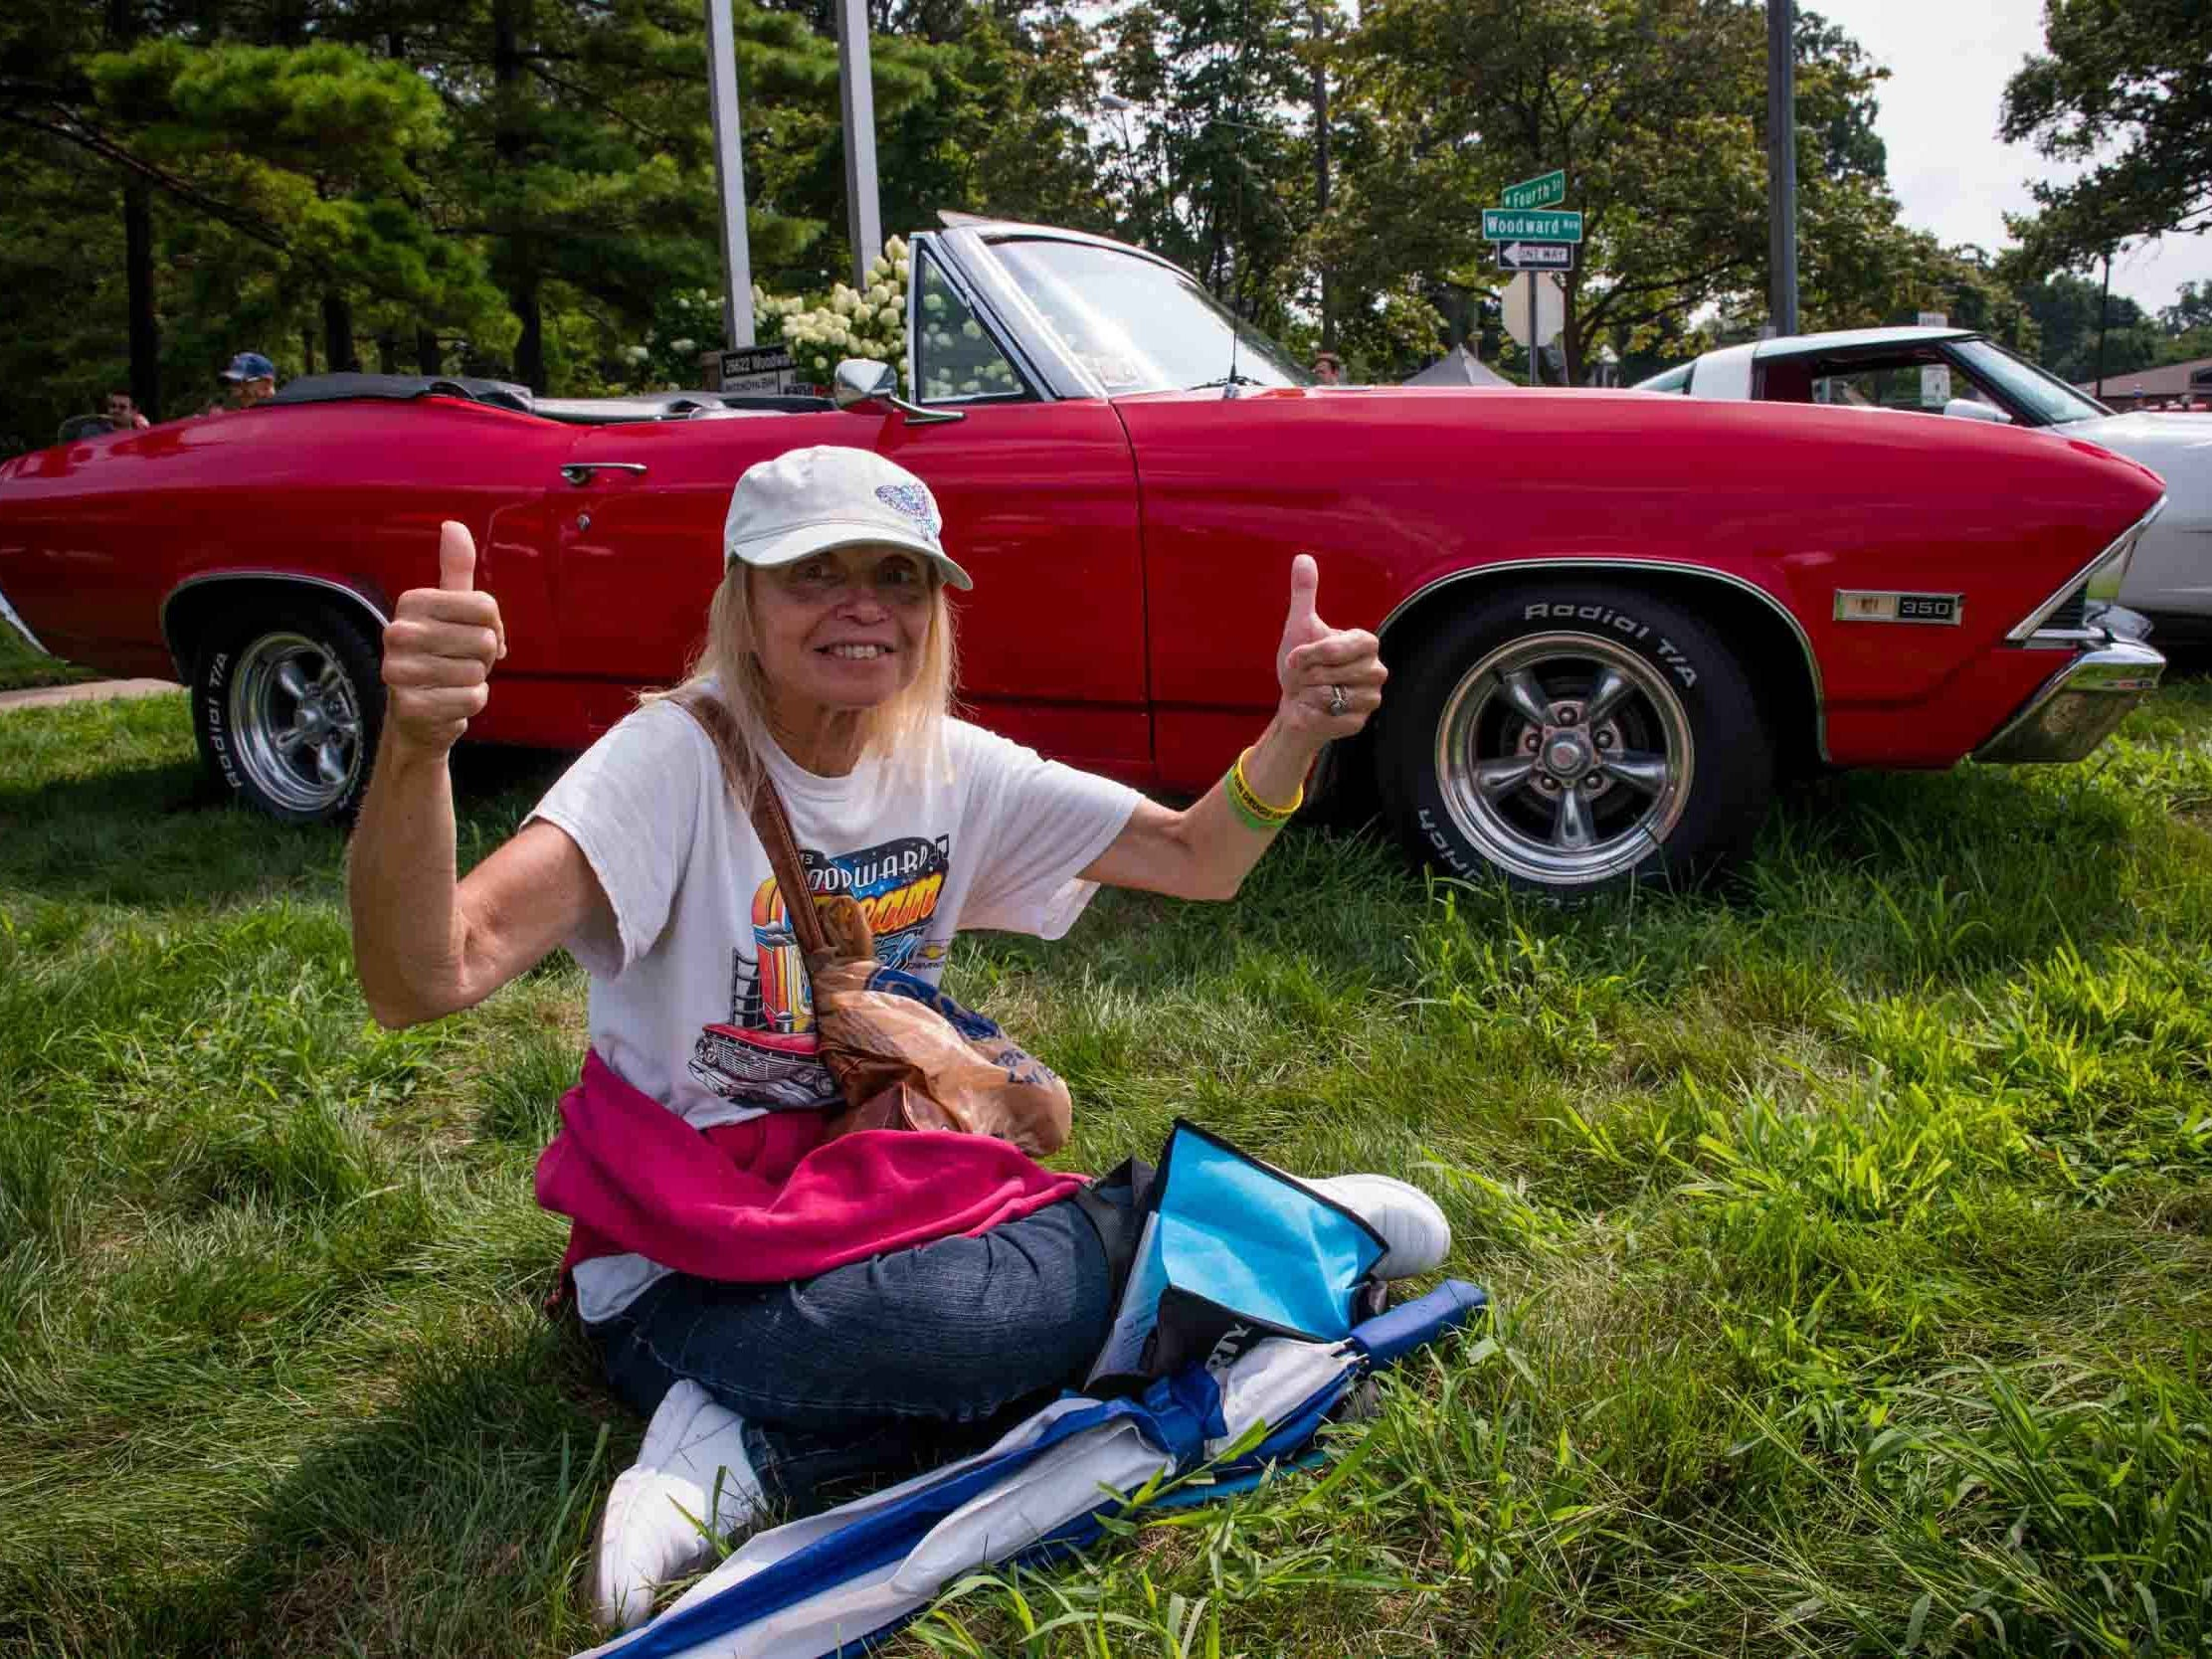 Diane Ellis of Rose gives the thumbs up to cruisers during the 2018 Woodward Dream Cruise on Aug. 18, 2018.